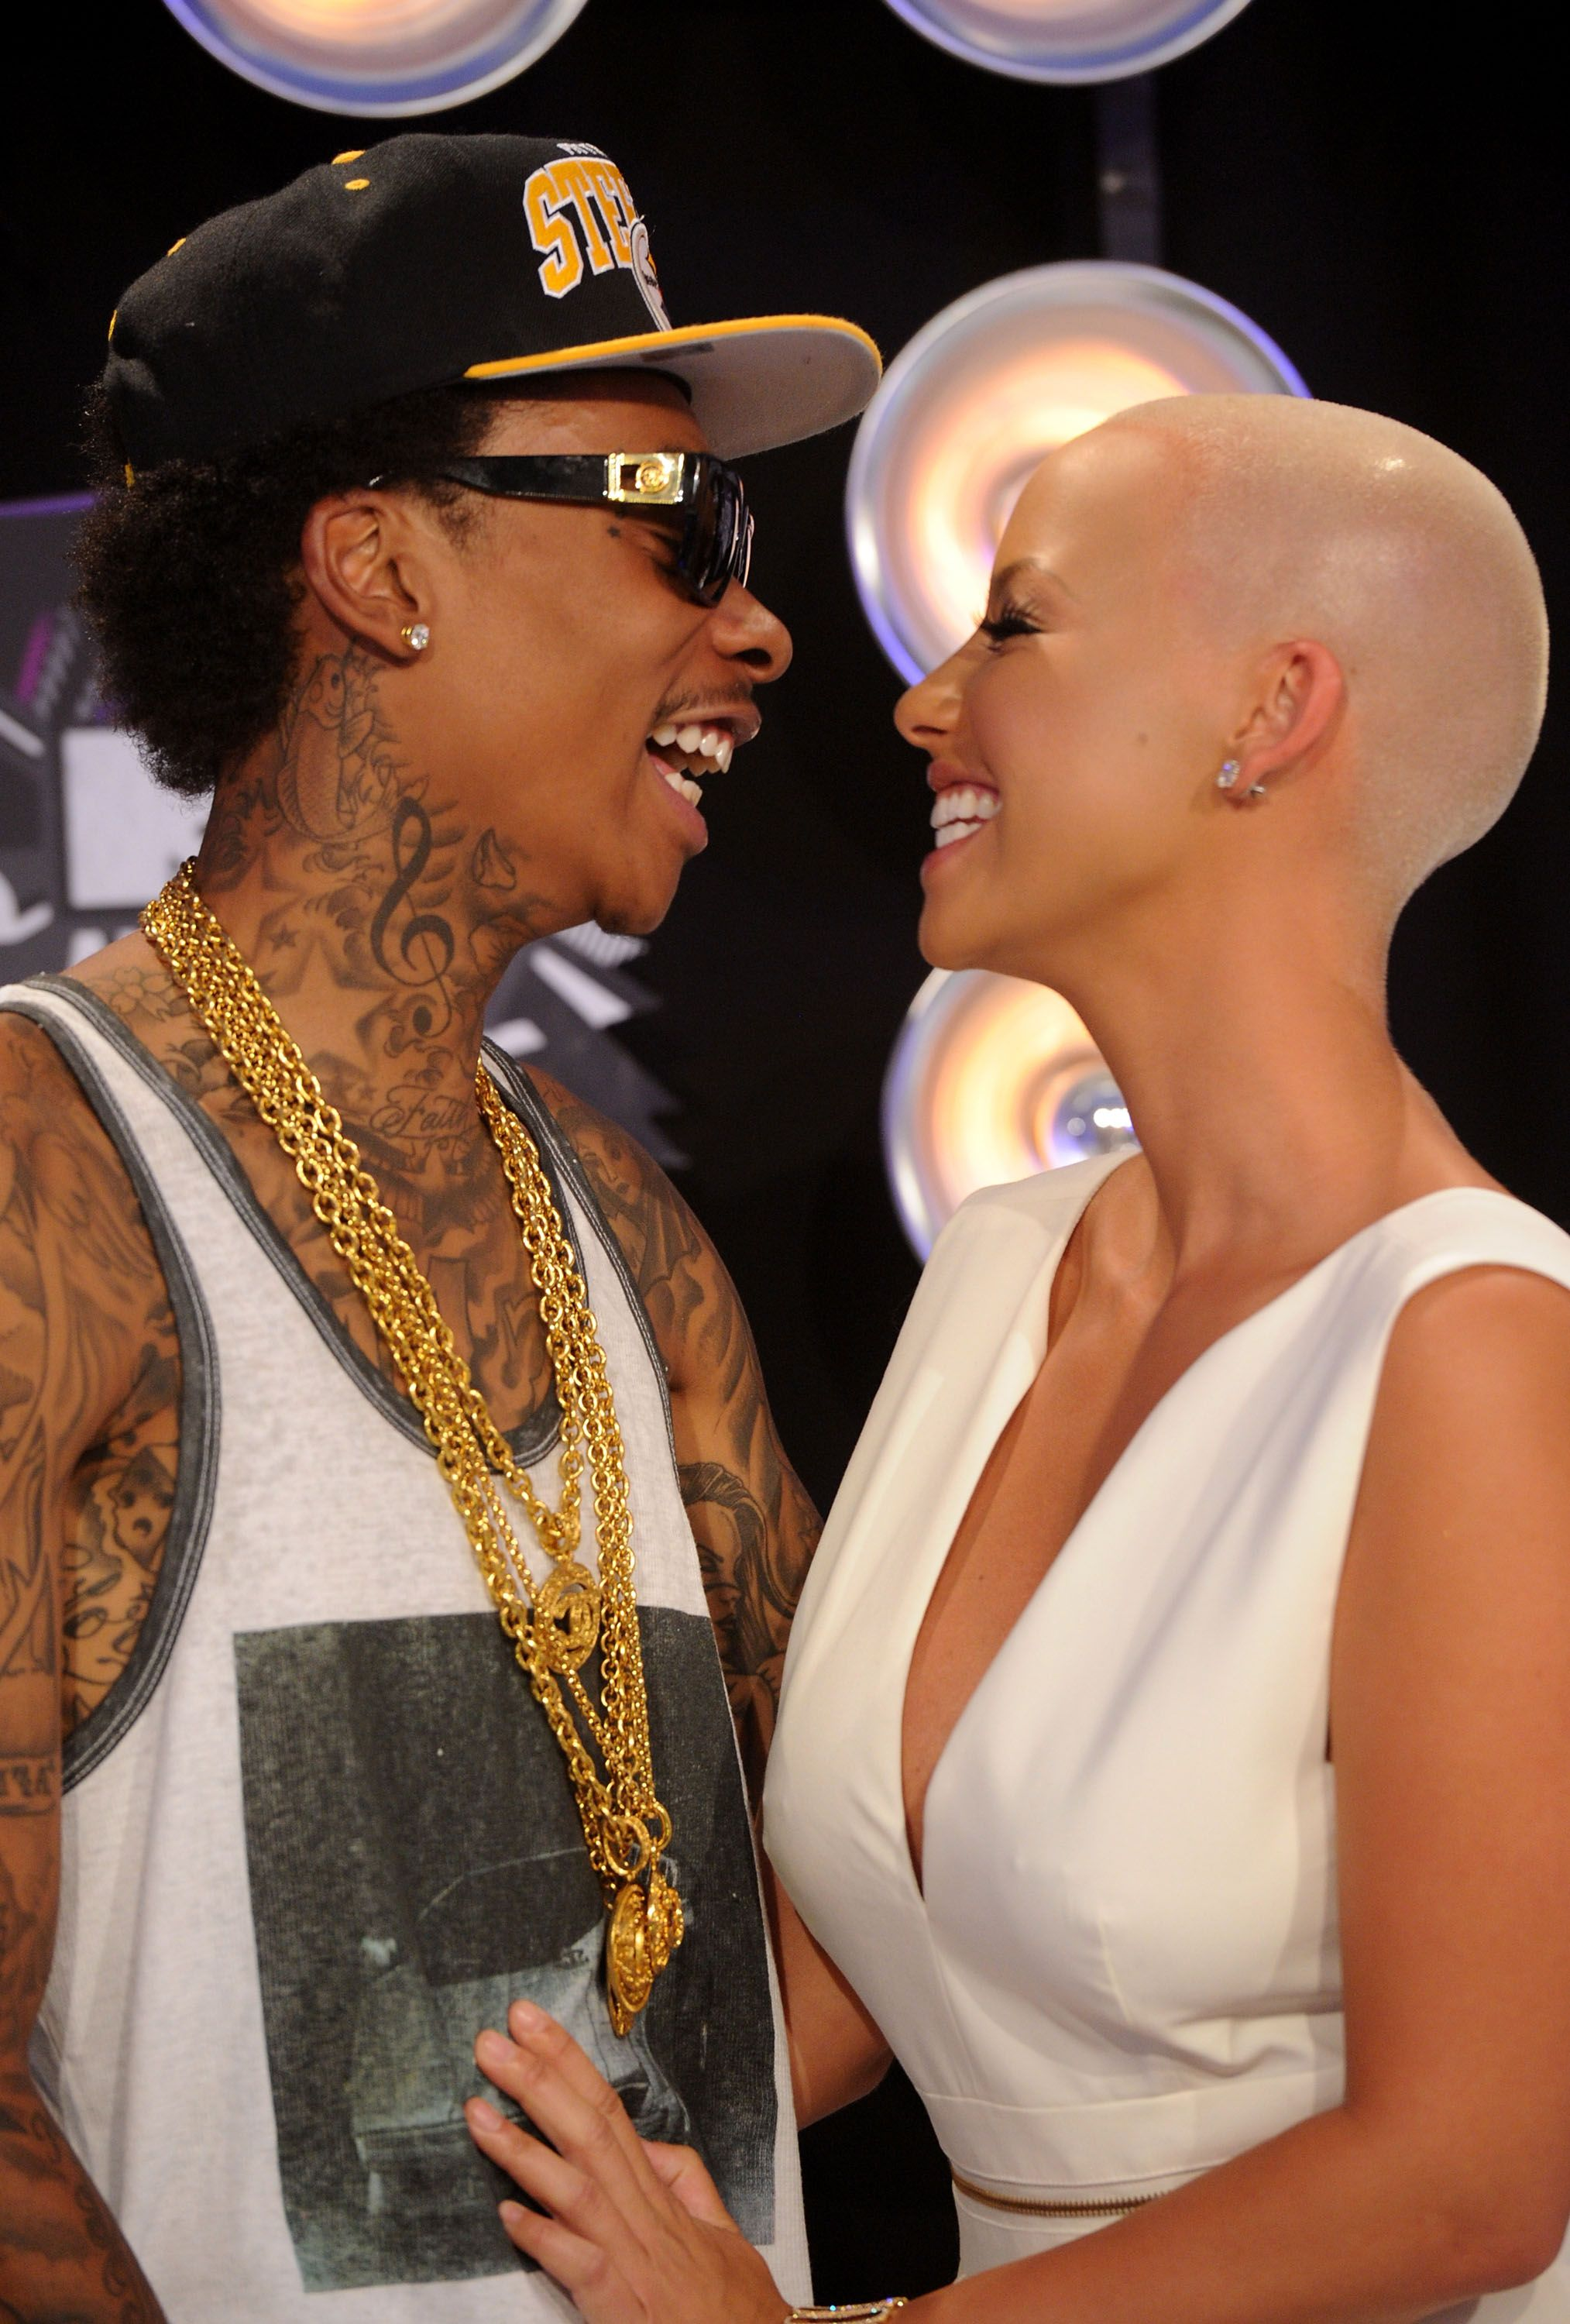 Amber Rose Wiz Khalifa Photos - Rapper Wiz Khalifa and model Amber Rose  arrive at the 2011 MTV Video Music Awards at Nokia Theatre L.